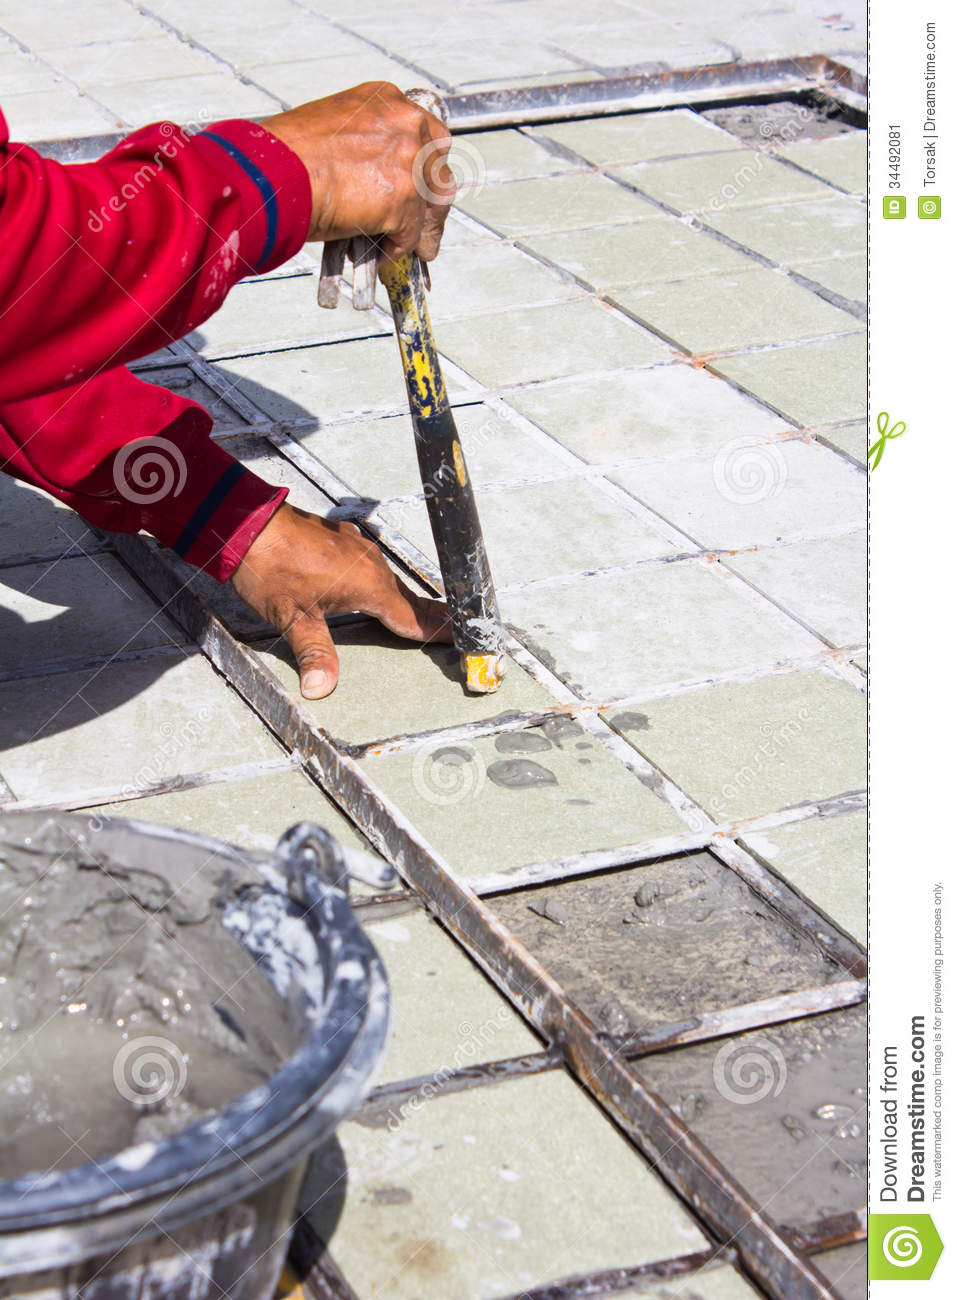 Floor Tile Workers : Tiles floor installation ceramic stock image